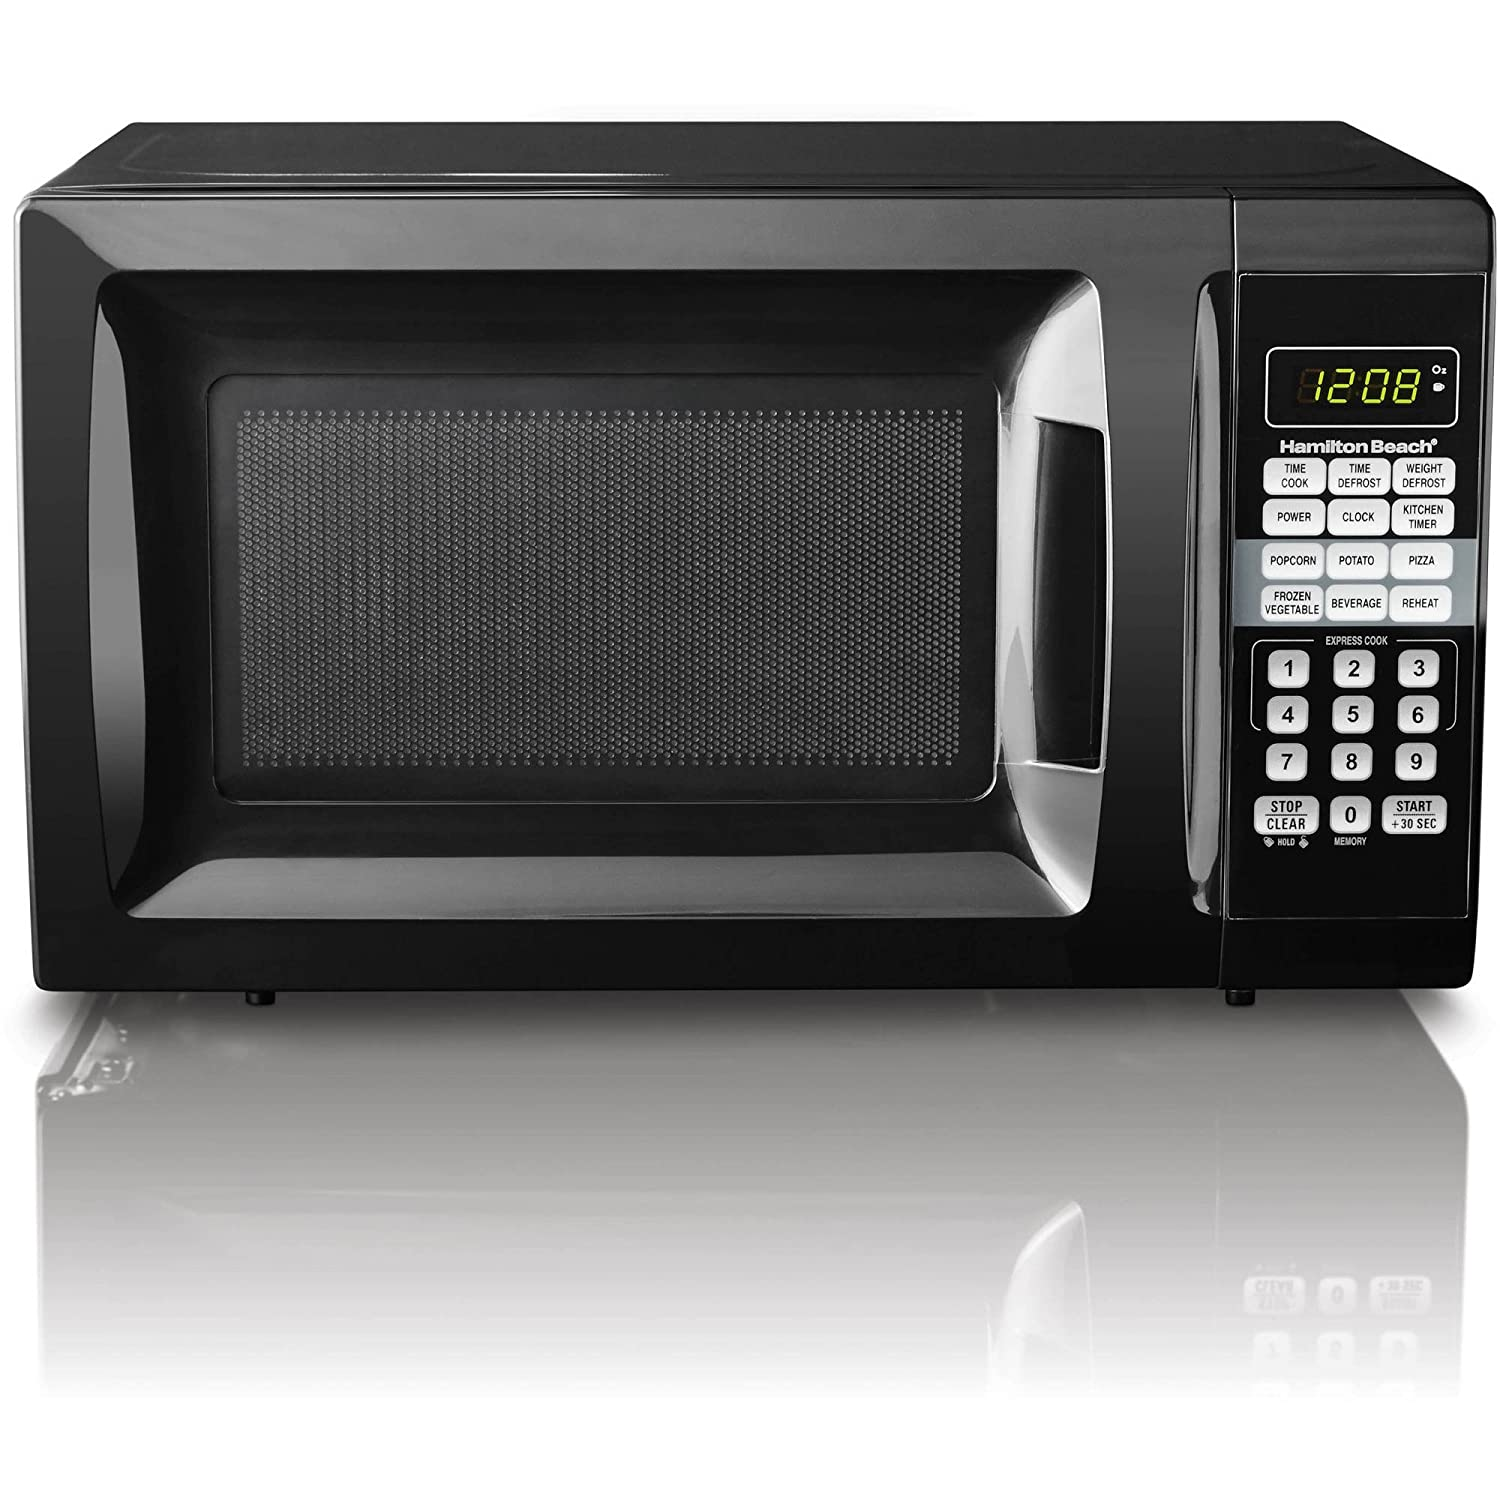 Child-Safe Lockout Feature Hamilton Beach 0.7 cu ft Microwave Oven